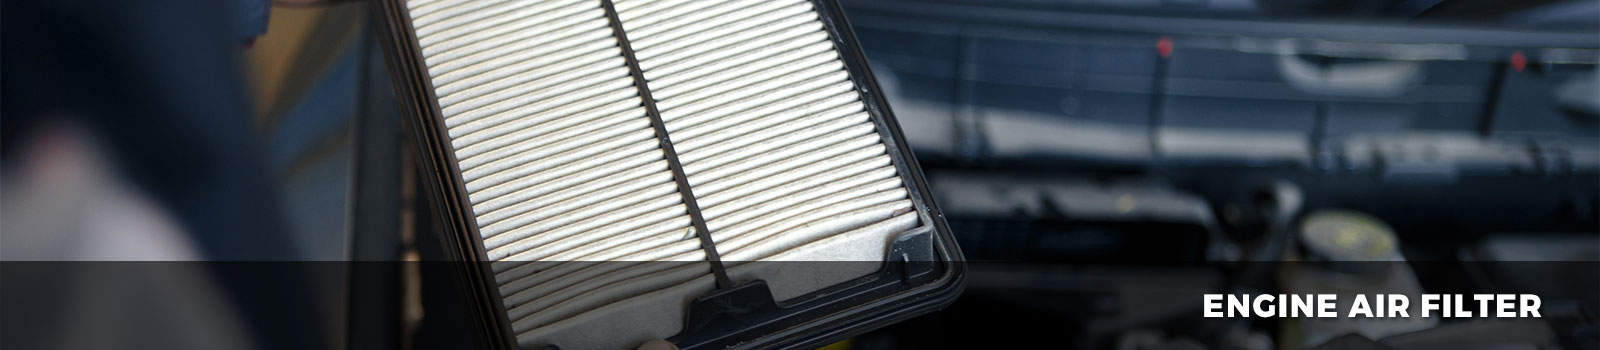 Engine Air Filter Services At Prince Toyota In Tifton, GA